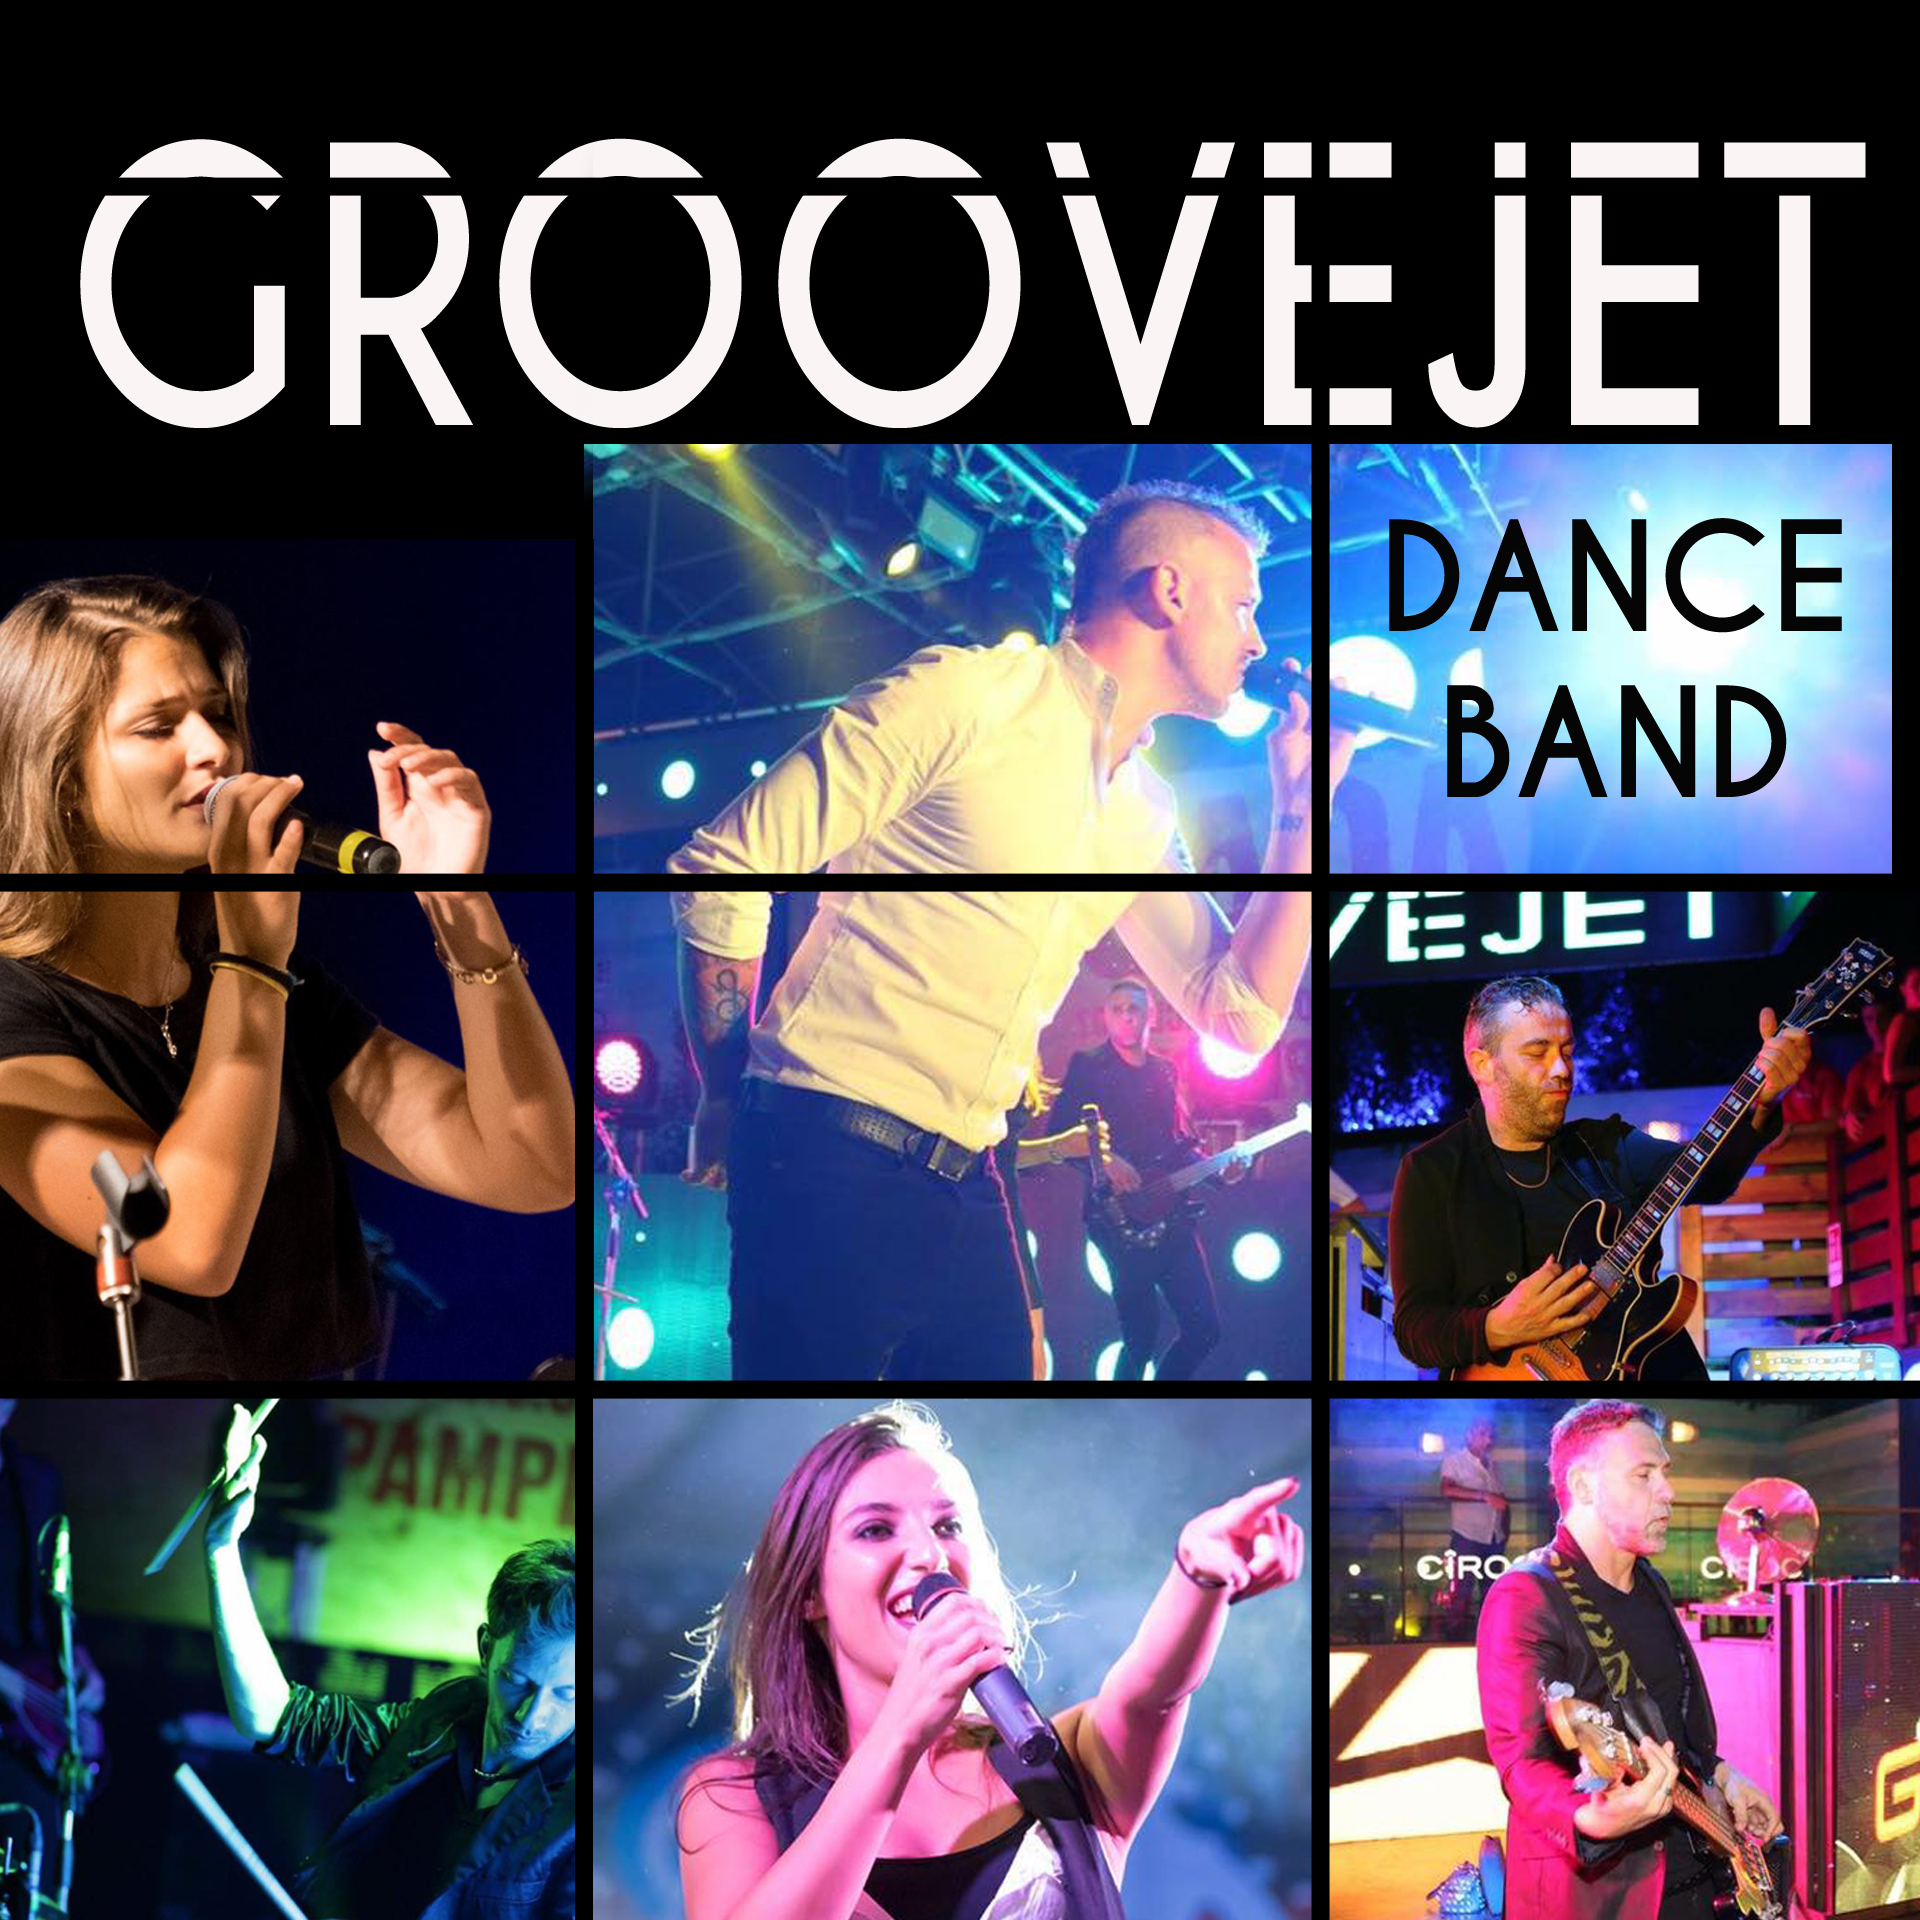 Foto Groovejet Dabce Band